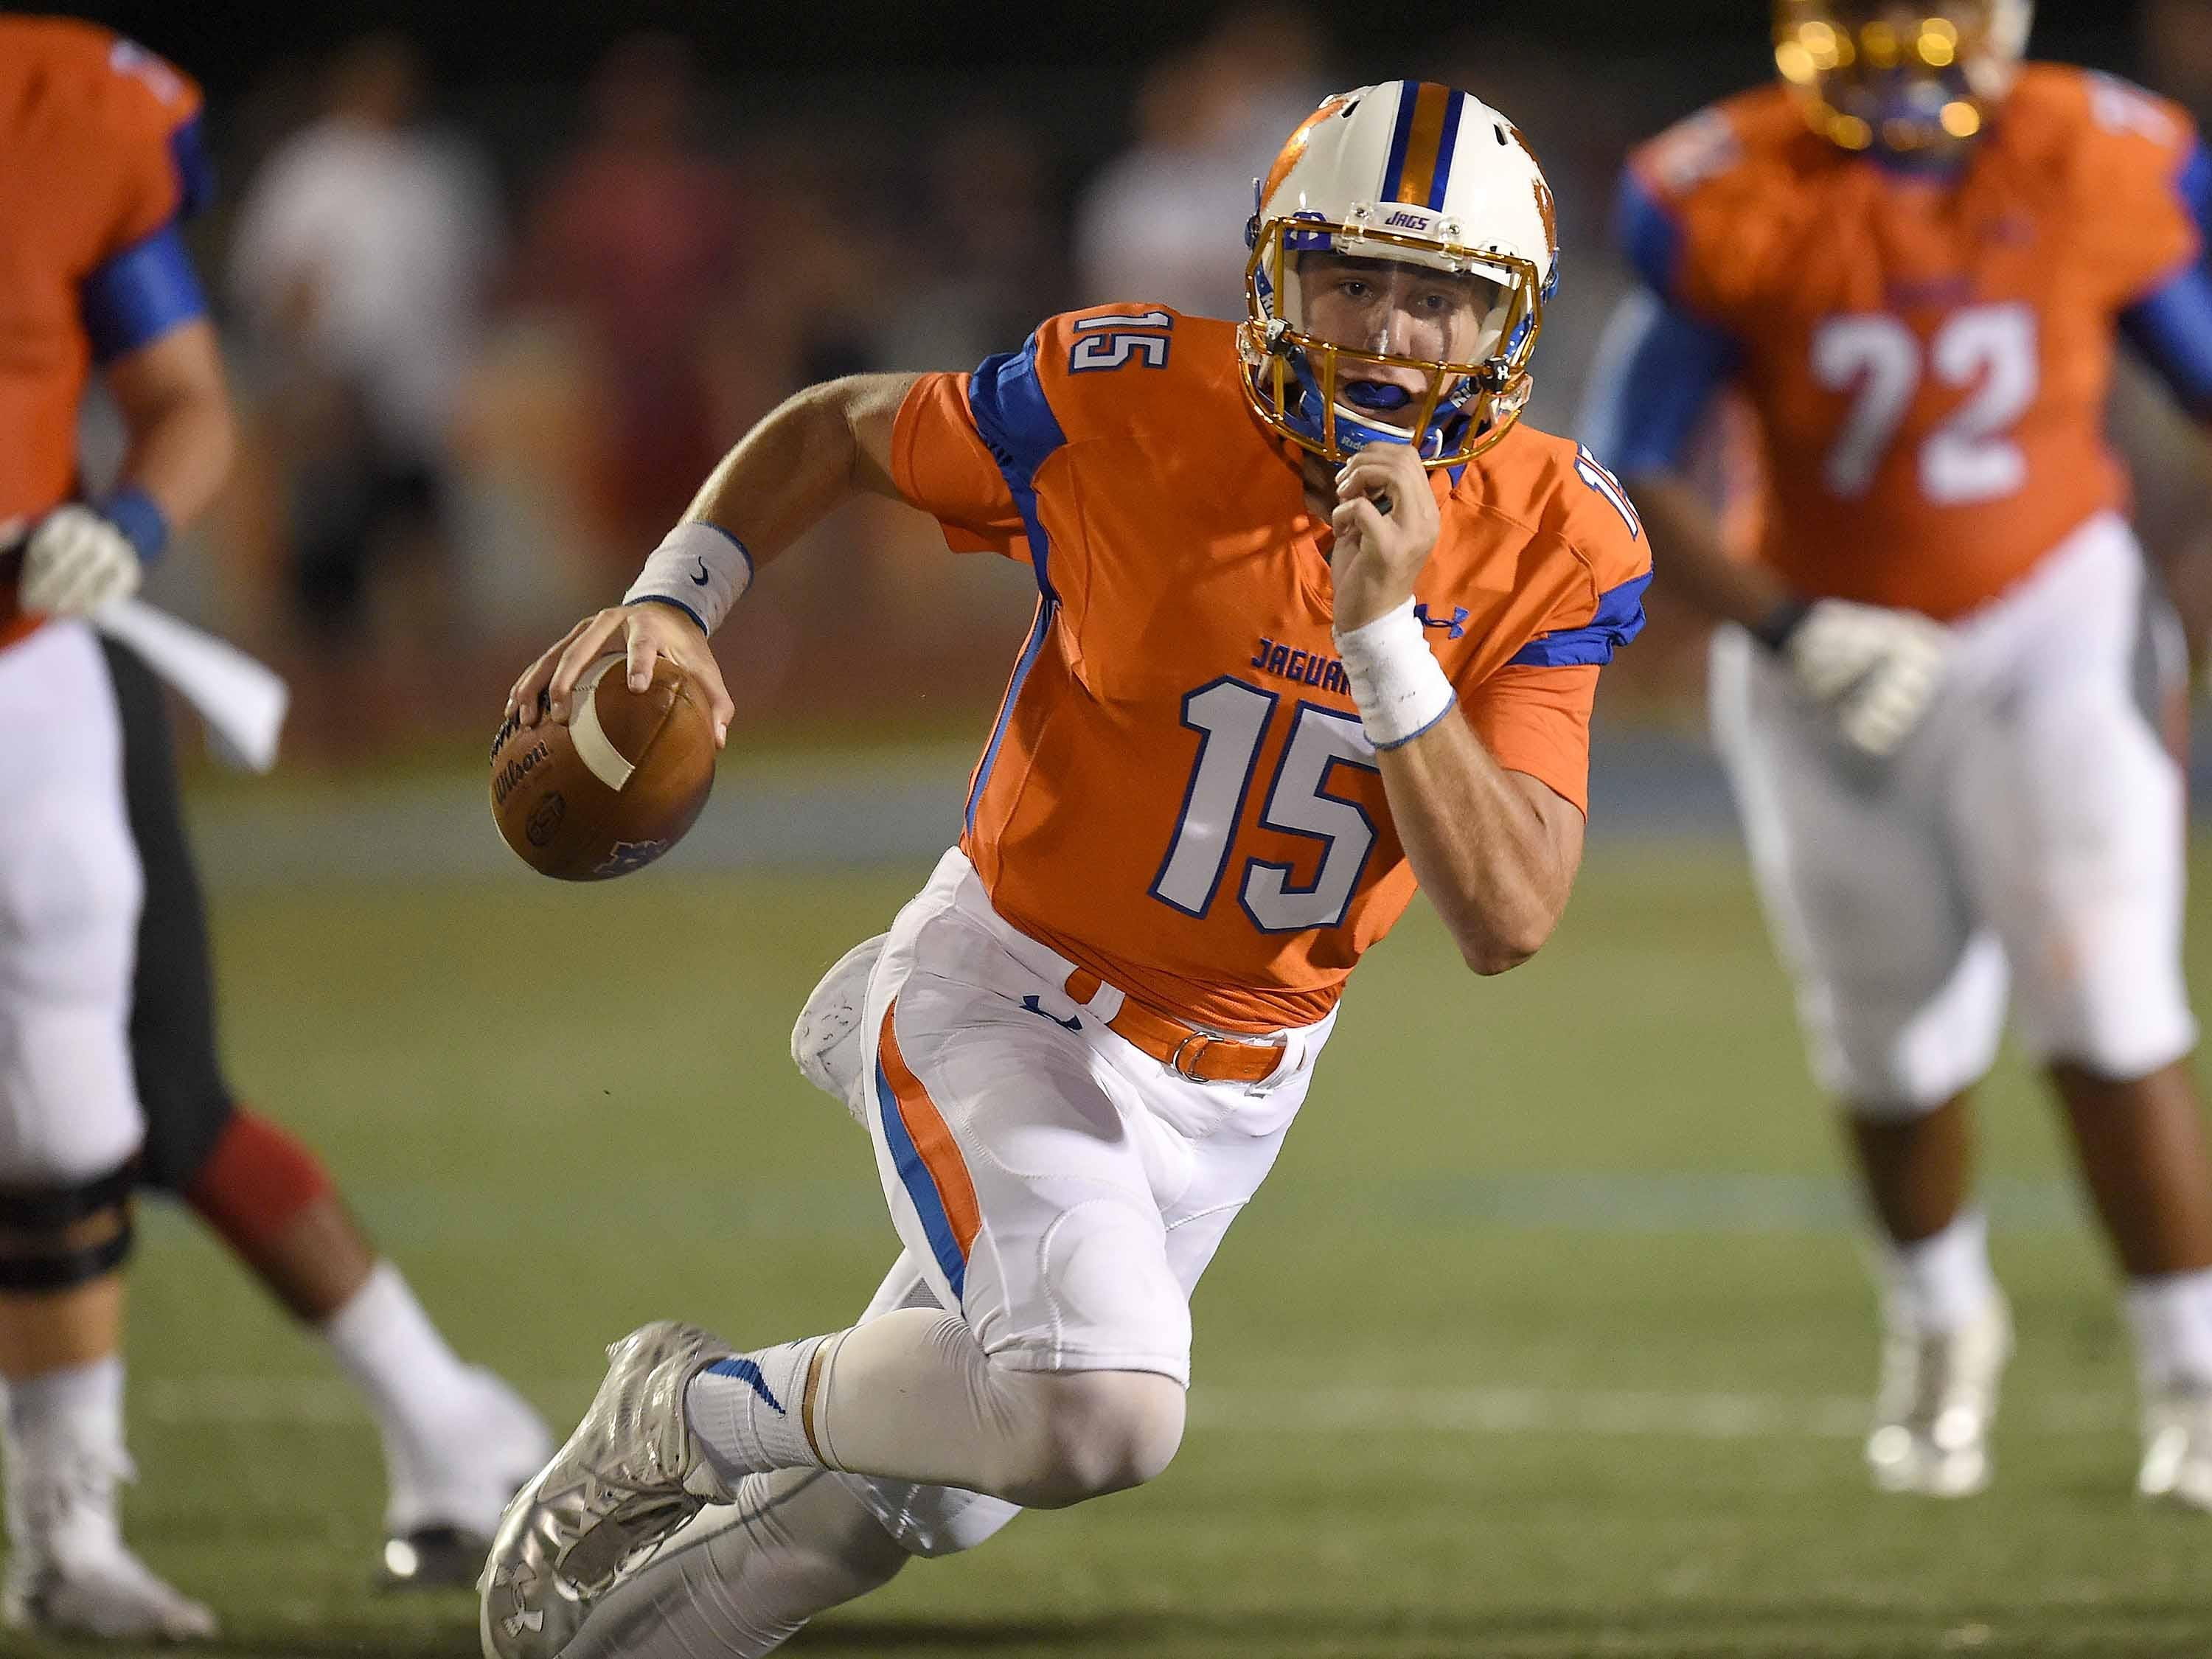 Quarterback Jack Walker and the Madison Central Jaguars hit the road Friday to take on the Oxford Chargers in a battle of Top 10 teams.